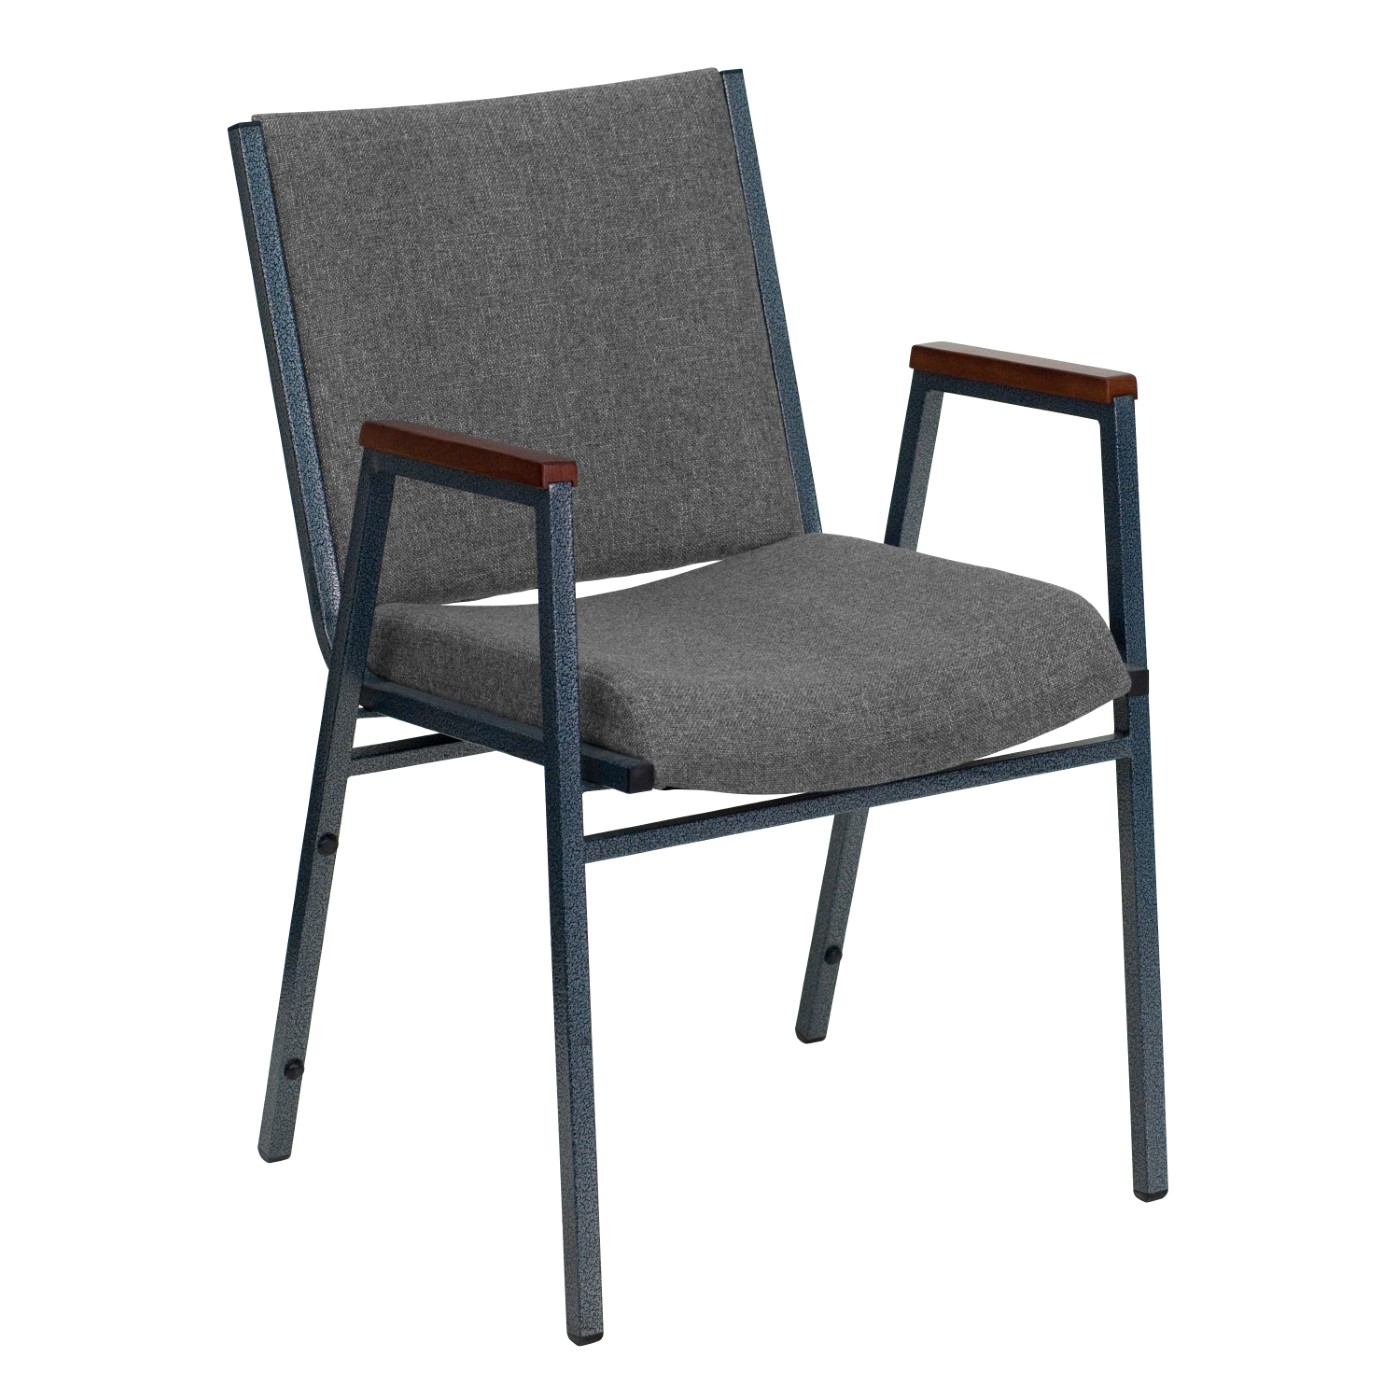 TOUGH ENOUGH Series Heavy Duty Gray Fabric Stack Chair with Arms